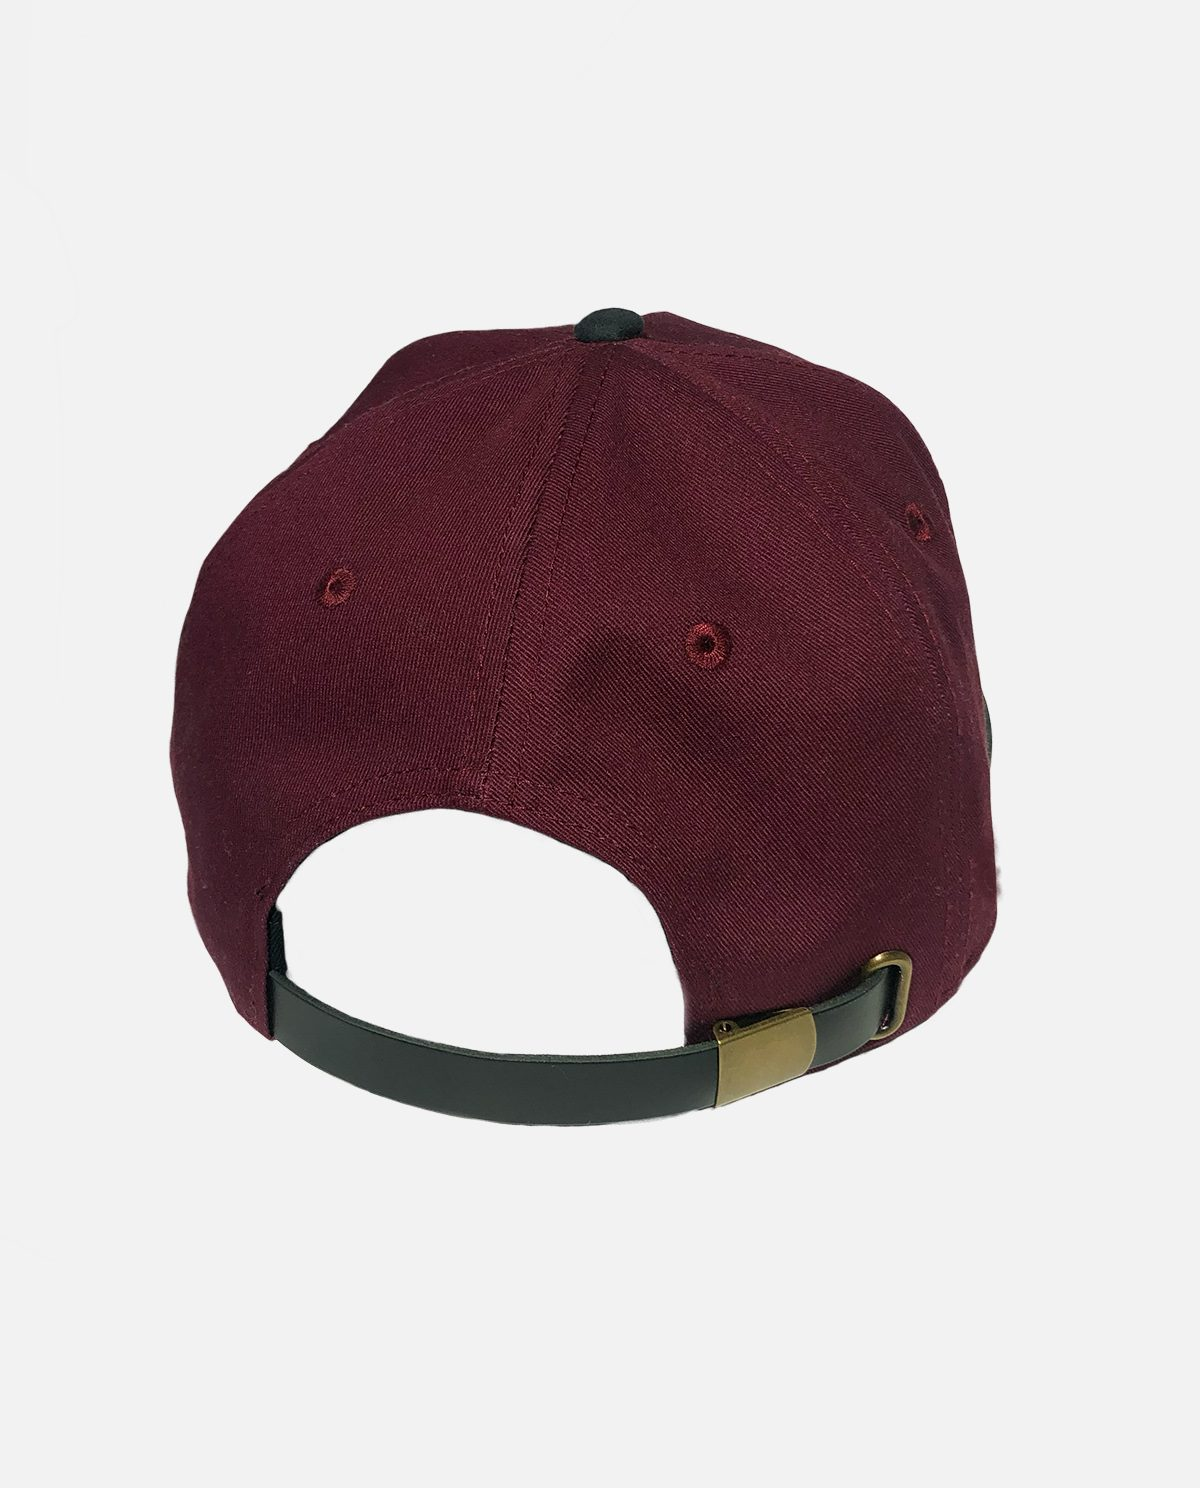 nysea-20wintercollection_hat-skyline-maroon-back